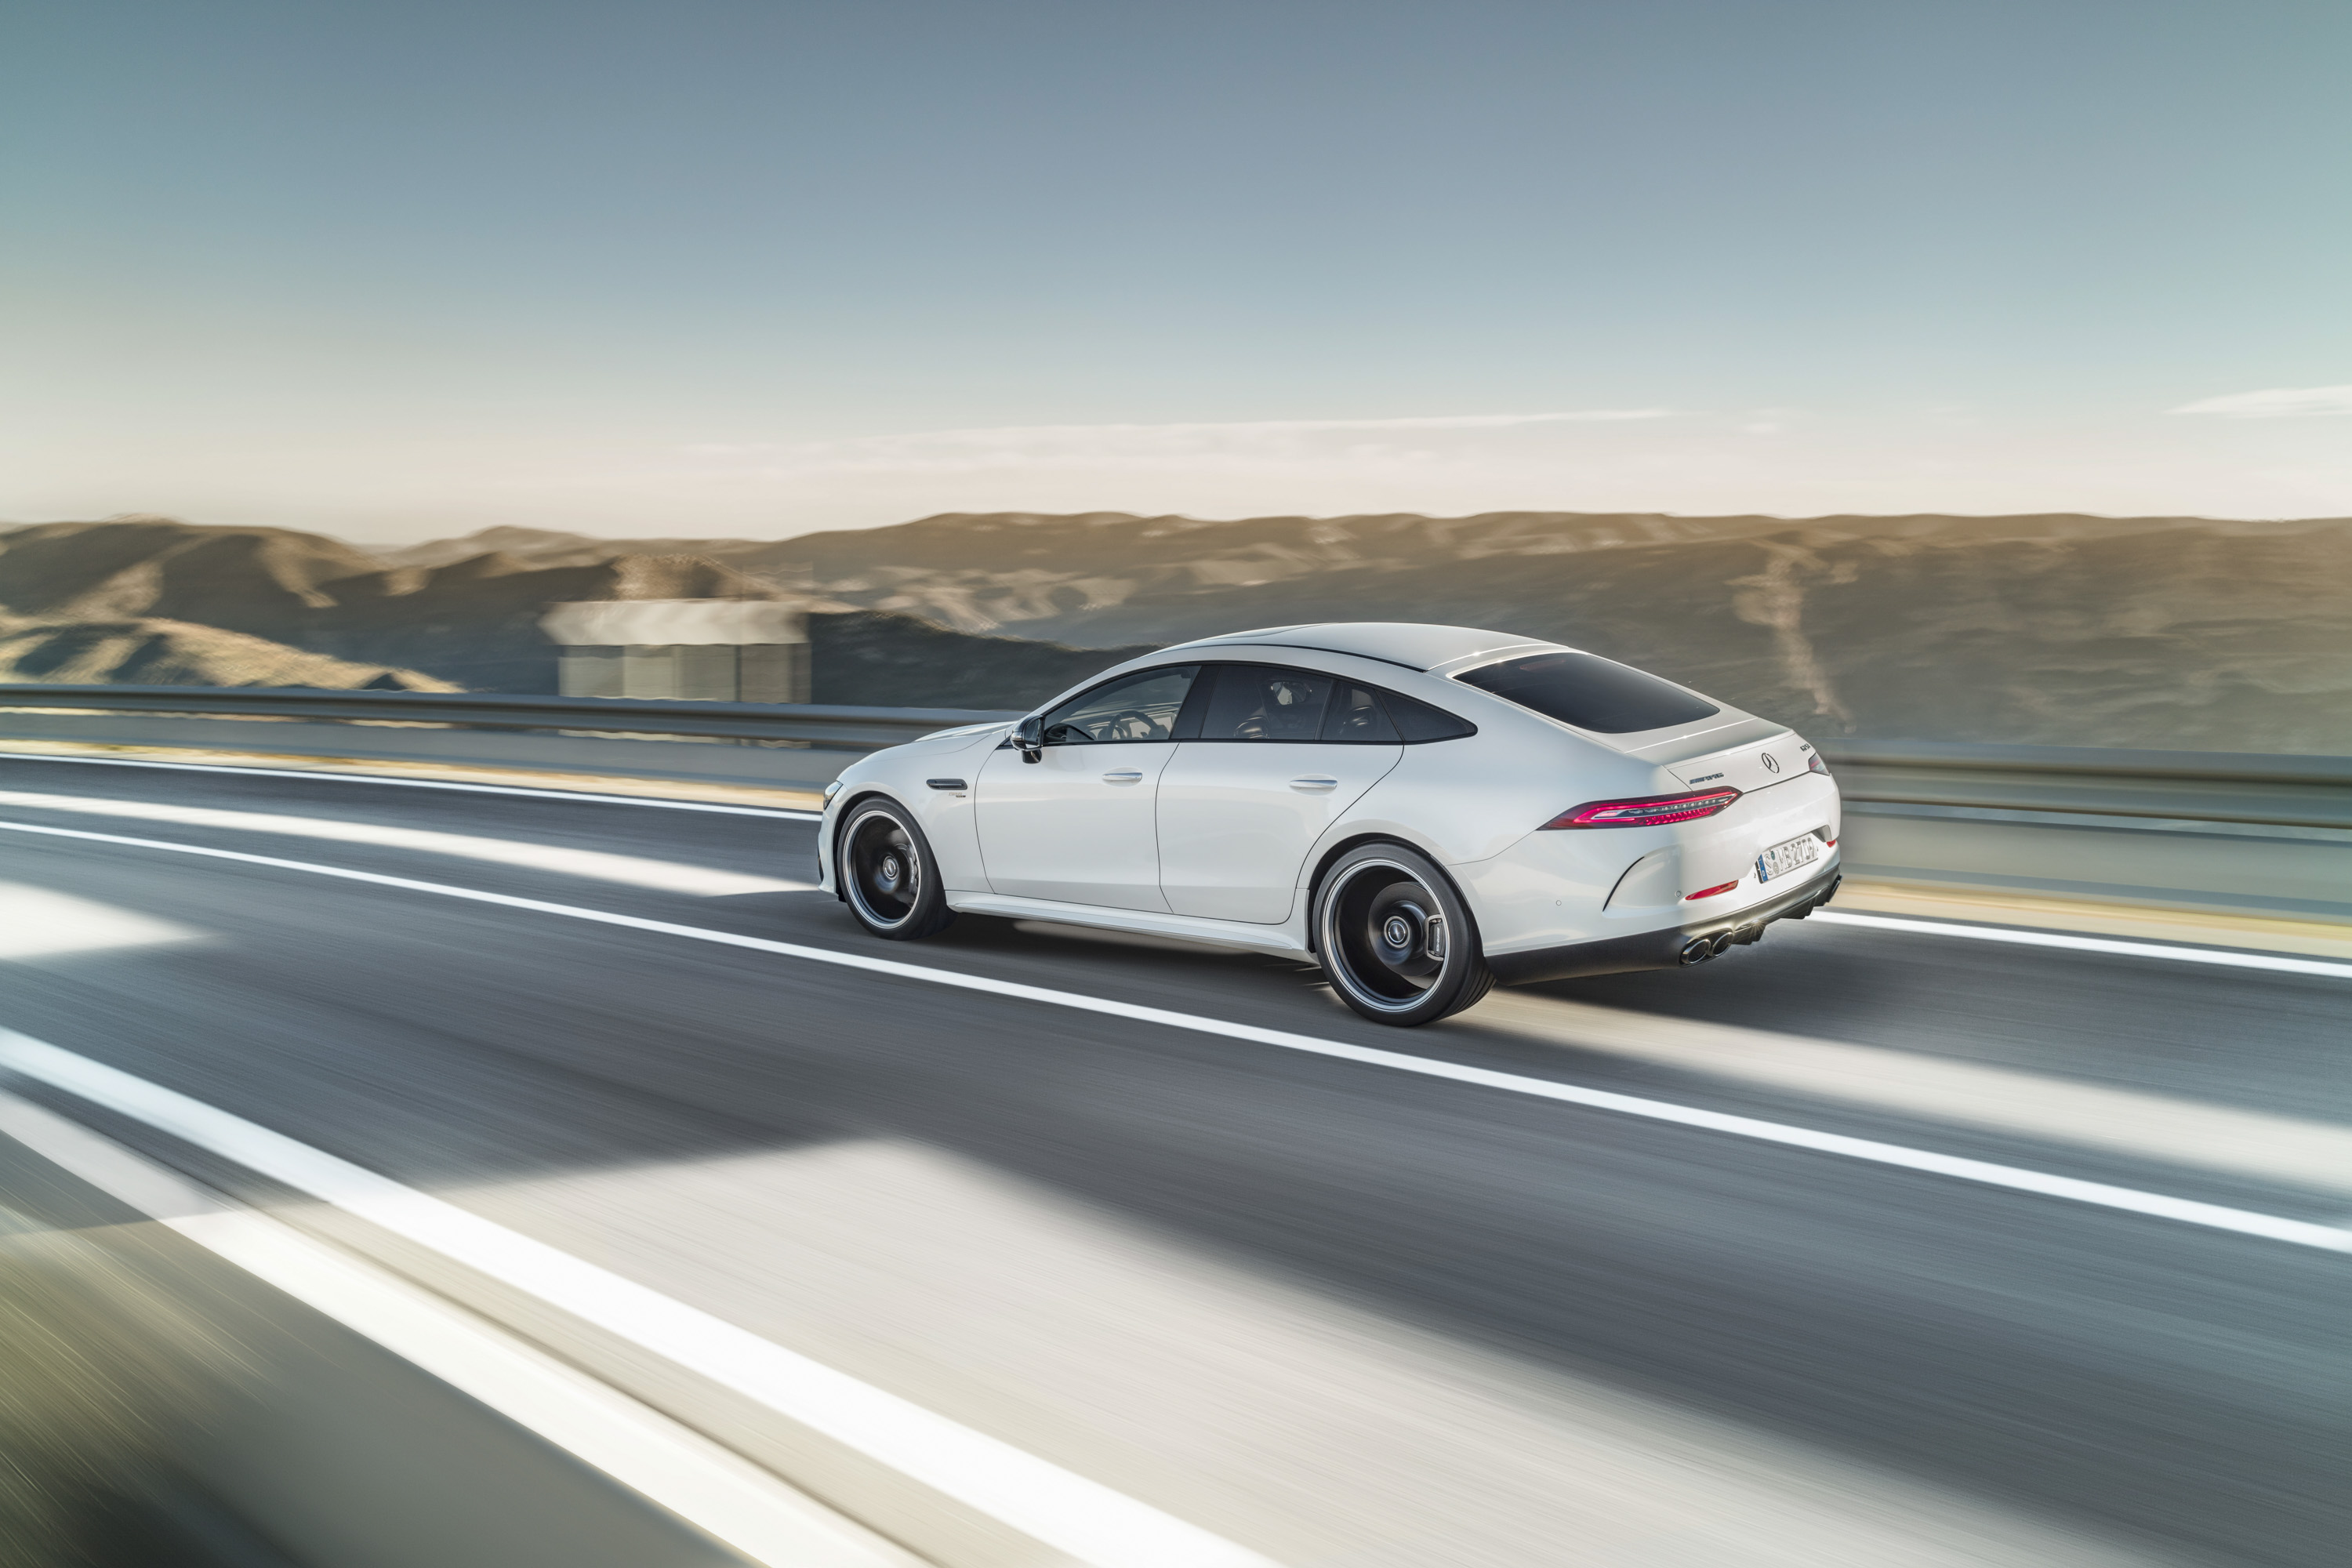 Go Back Gt Pics For Electric Circuit Symbols The Mercedes Amg 4 Door Coupe Is Here And Its Basically A Cls With More Power Top Speed